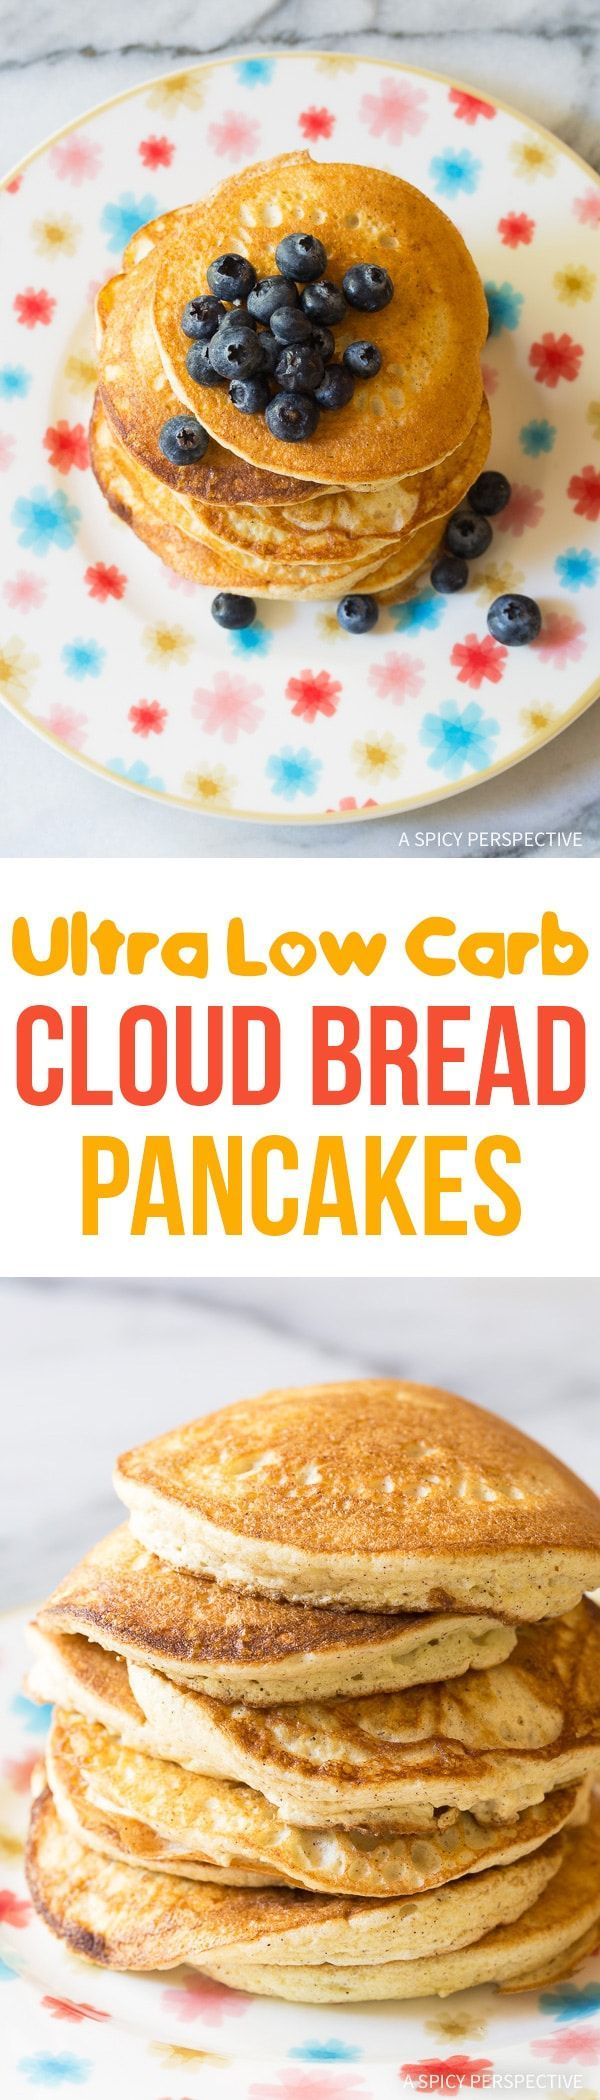 Low Carb Cloud Bread Pancakes (Ketogenic) - This healthy pancake recipe is low in carbohydrates, fat, and calories! An easy fit for most low carb diets. via @spicyperspectiv